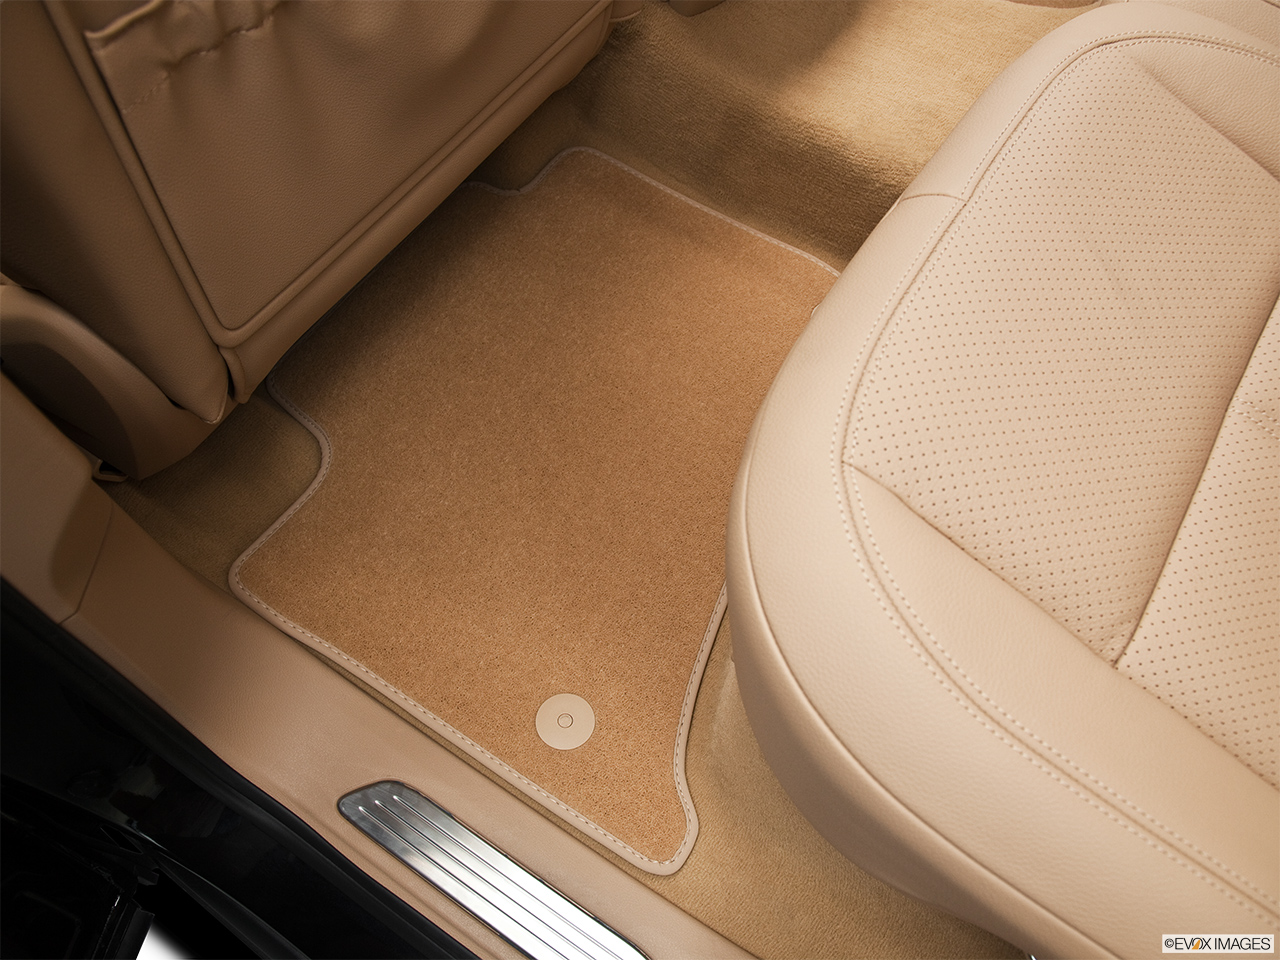 2011 Porsche Cayenne S Hybrid Base Rear driver's side floor mat. Mid-seat level from outside looking in.